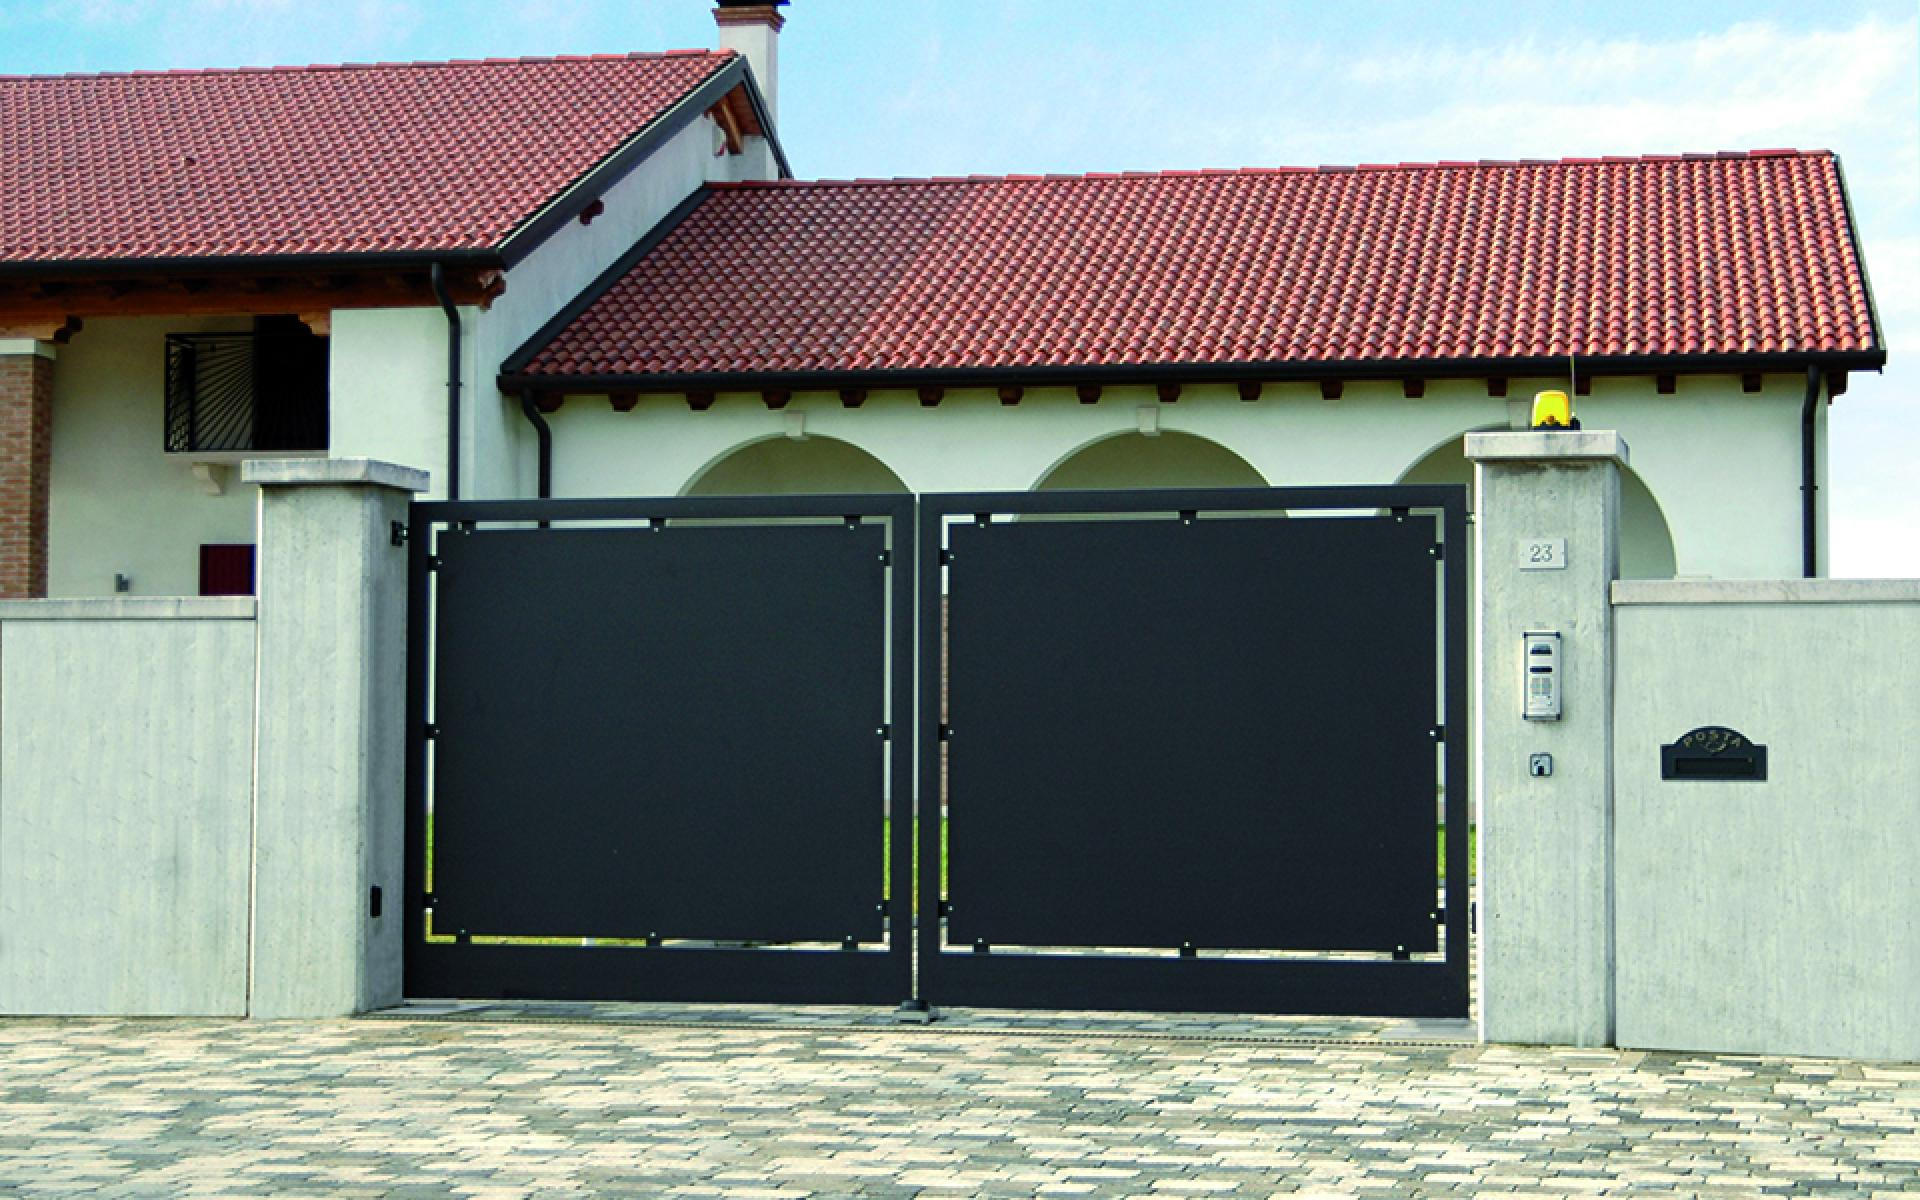 Contemporary metal gate with underground CAME Frog J automation